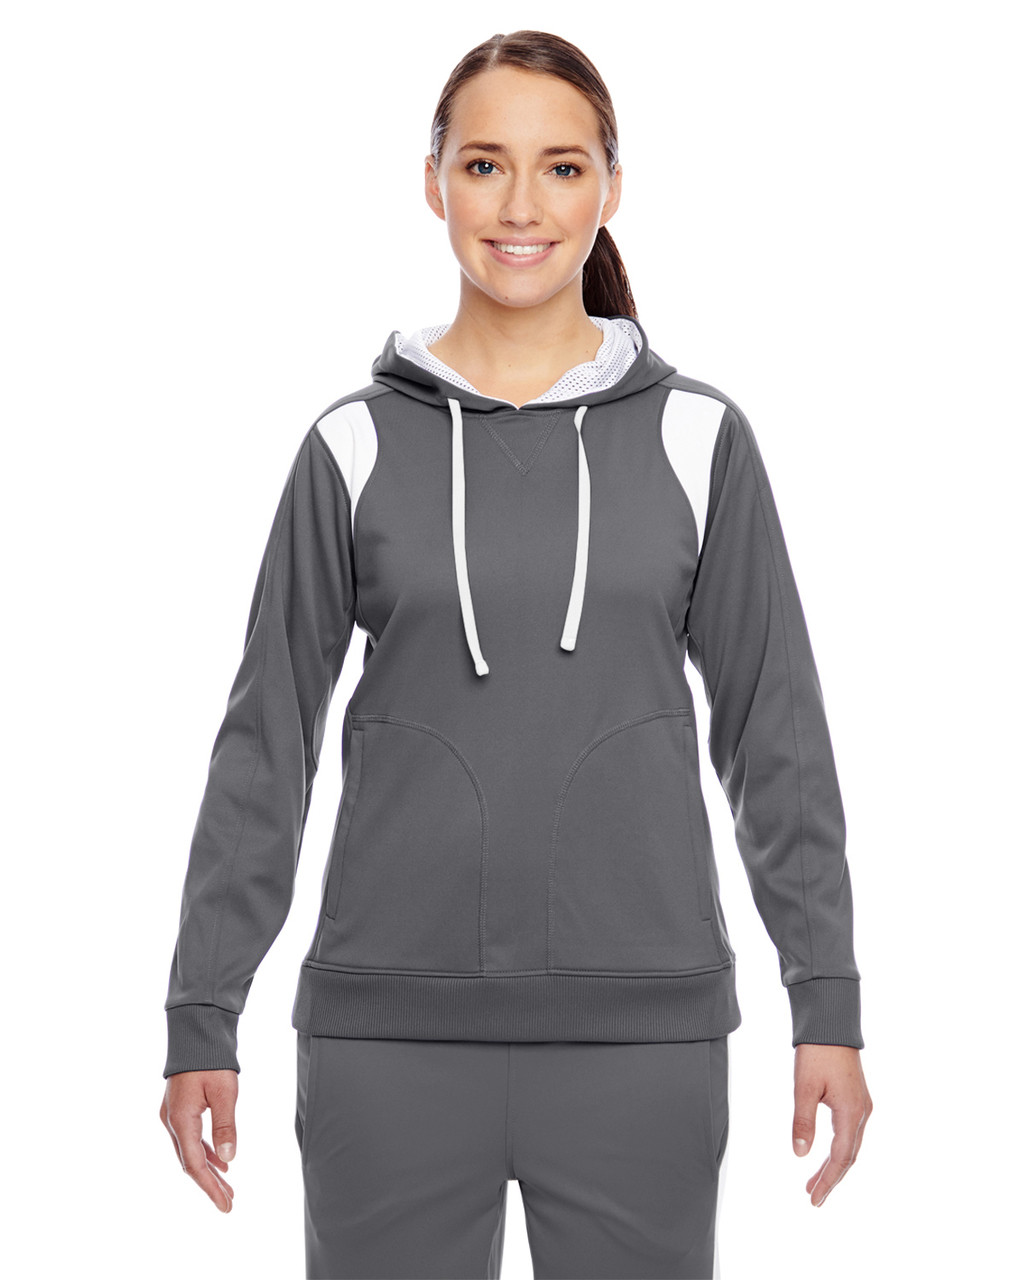 Graphite/White - TT30W Team 365 Ladies' Elite Performance Hoodie | Blankclothing.ca